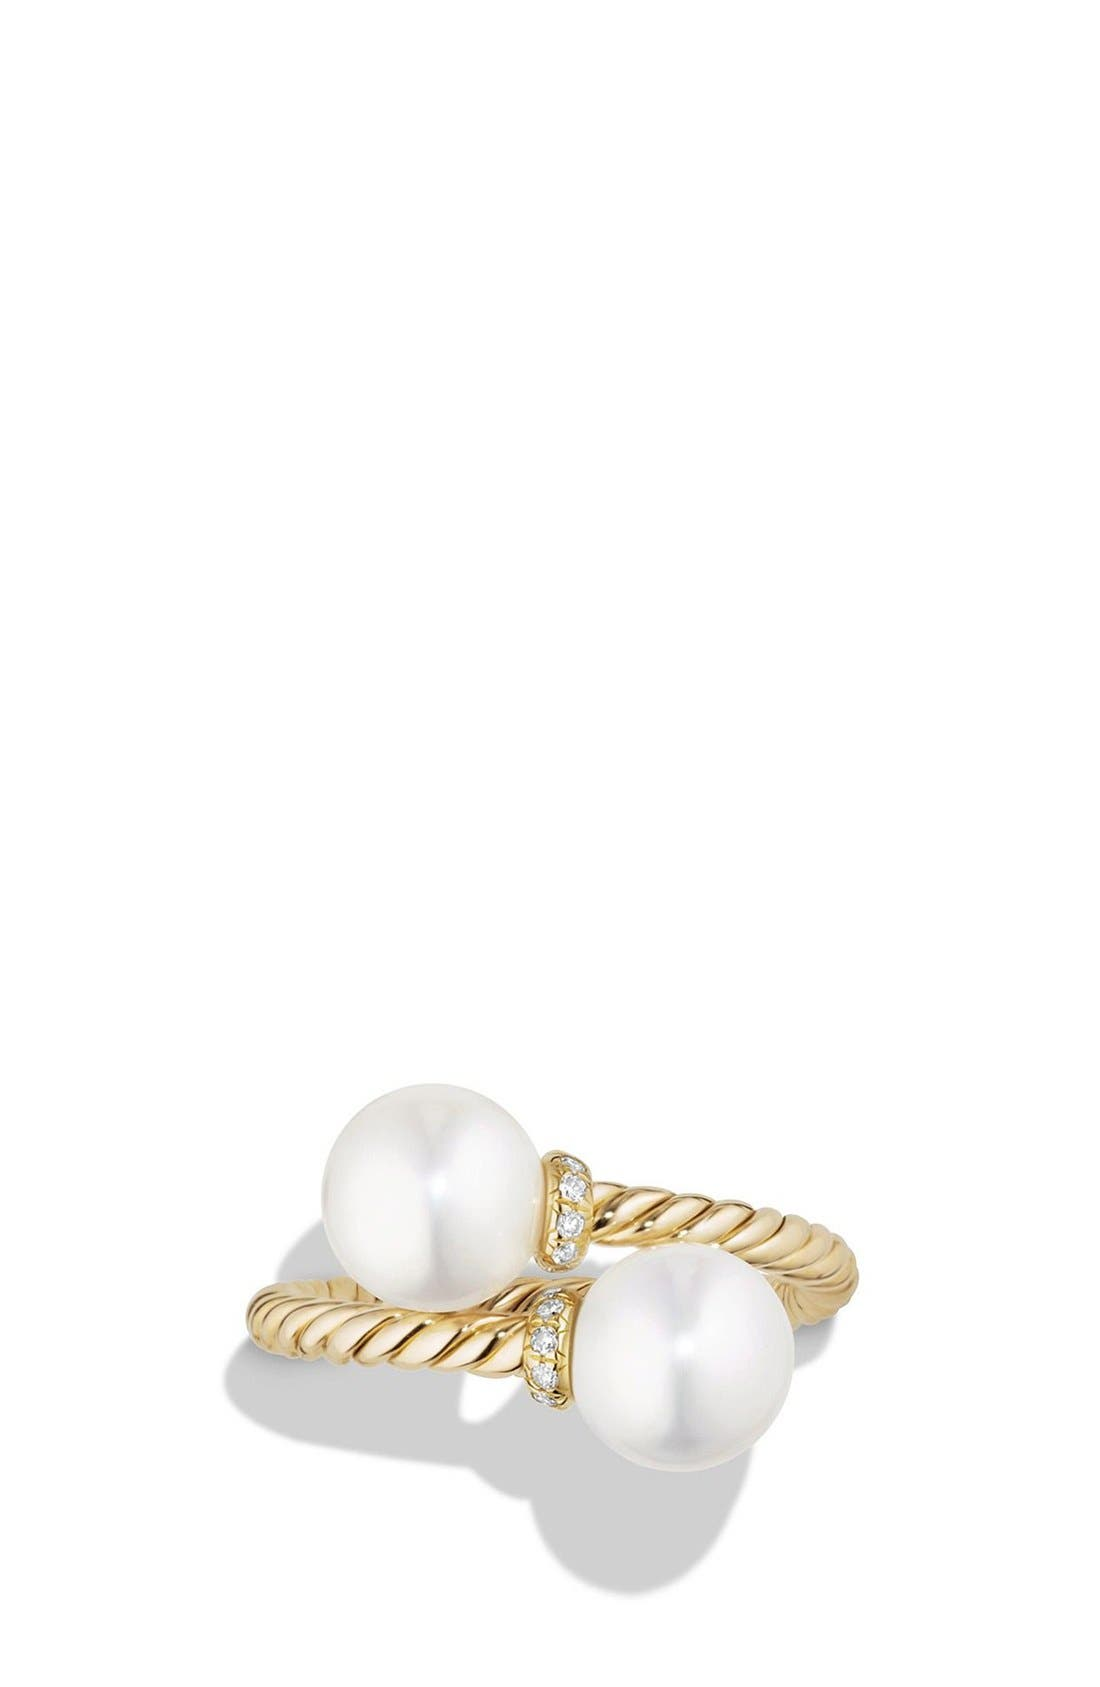 'Solari' Bead Ring with Diamonds and Pearls in 18K Gold,                             Alternate thumbnail 3, color,                             PEARL